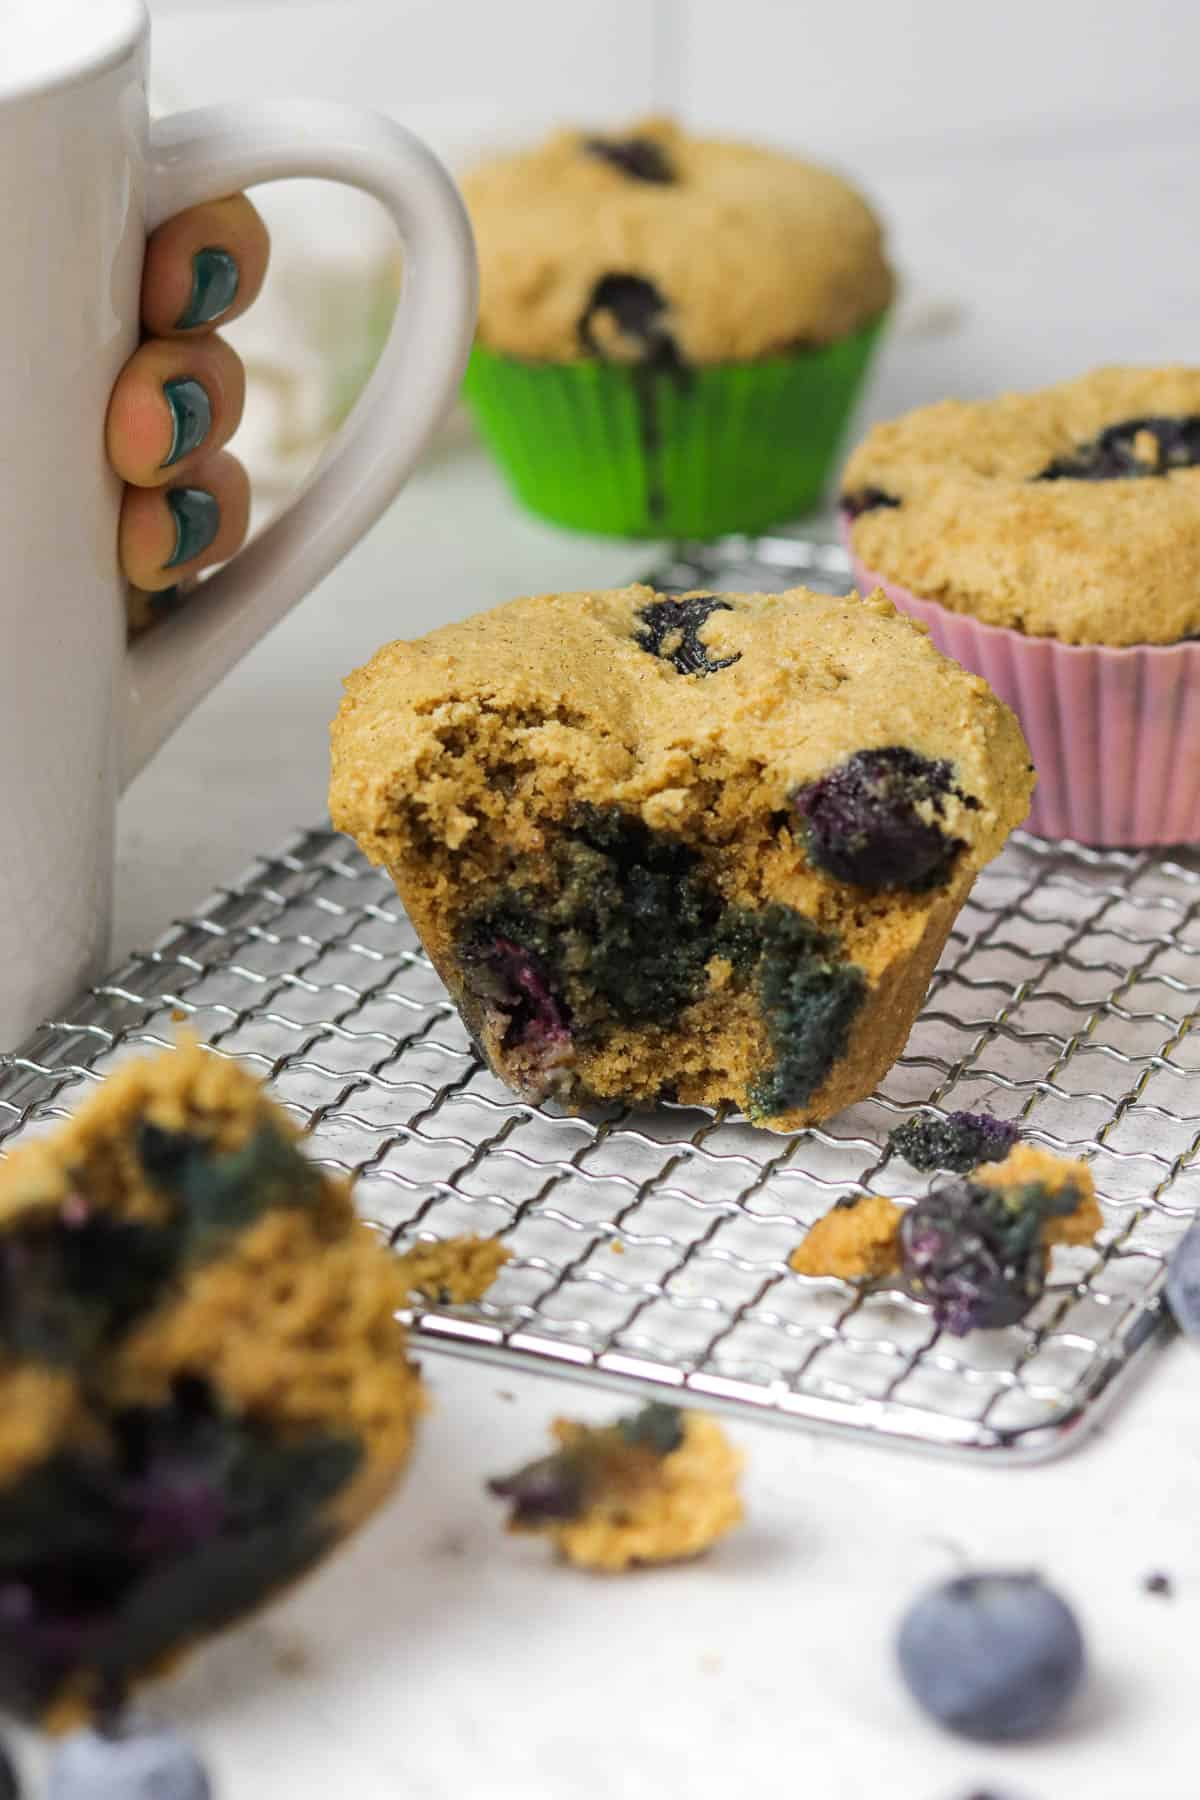 gluten free blueberry muffin on a cooling rack.